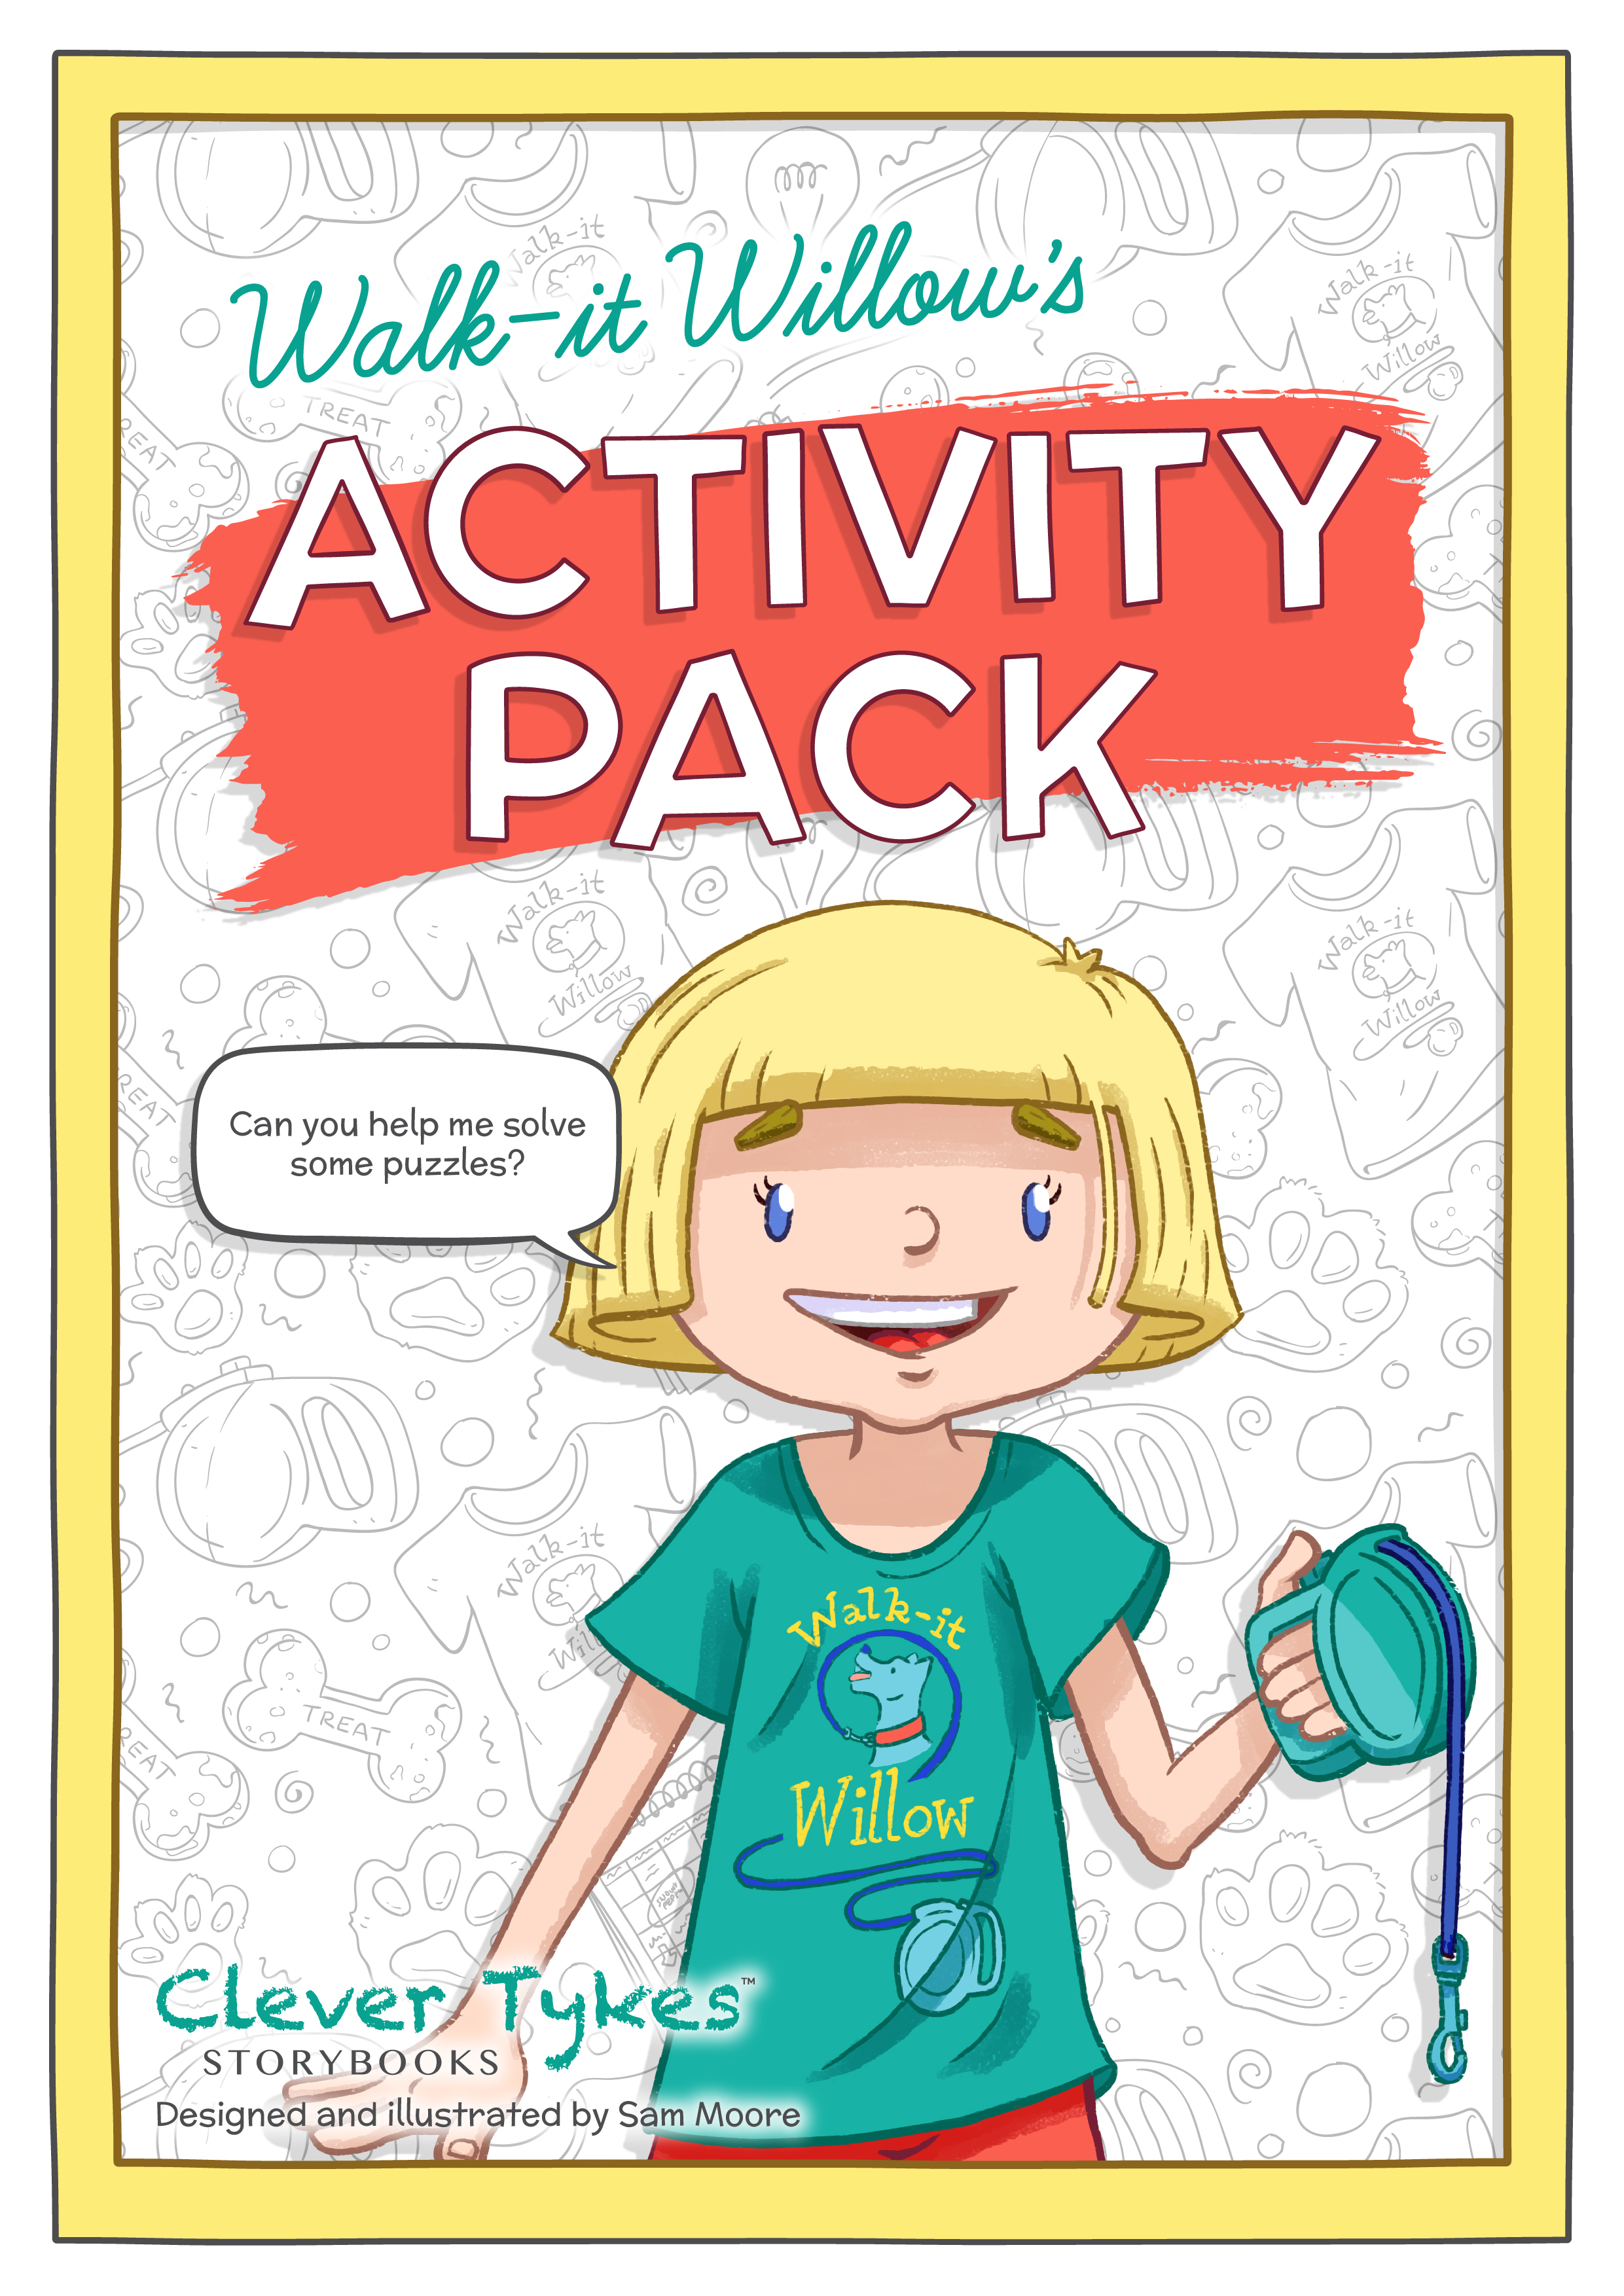 Printable Walk-it Willow activity pack - Clever Tykes